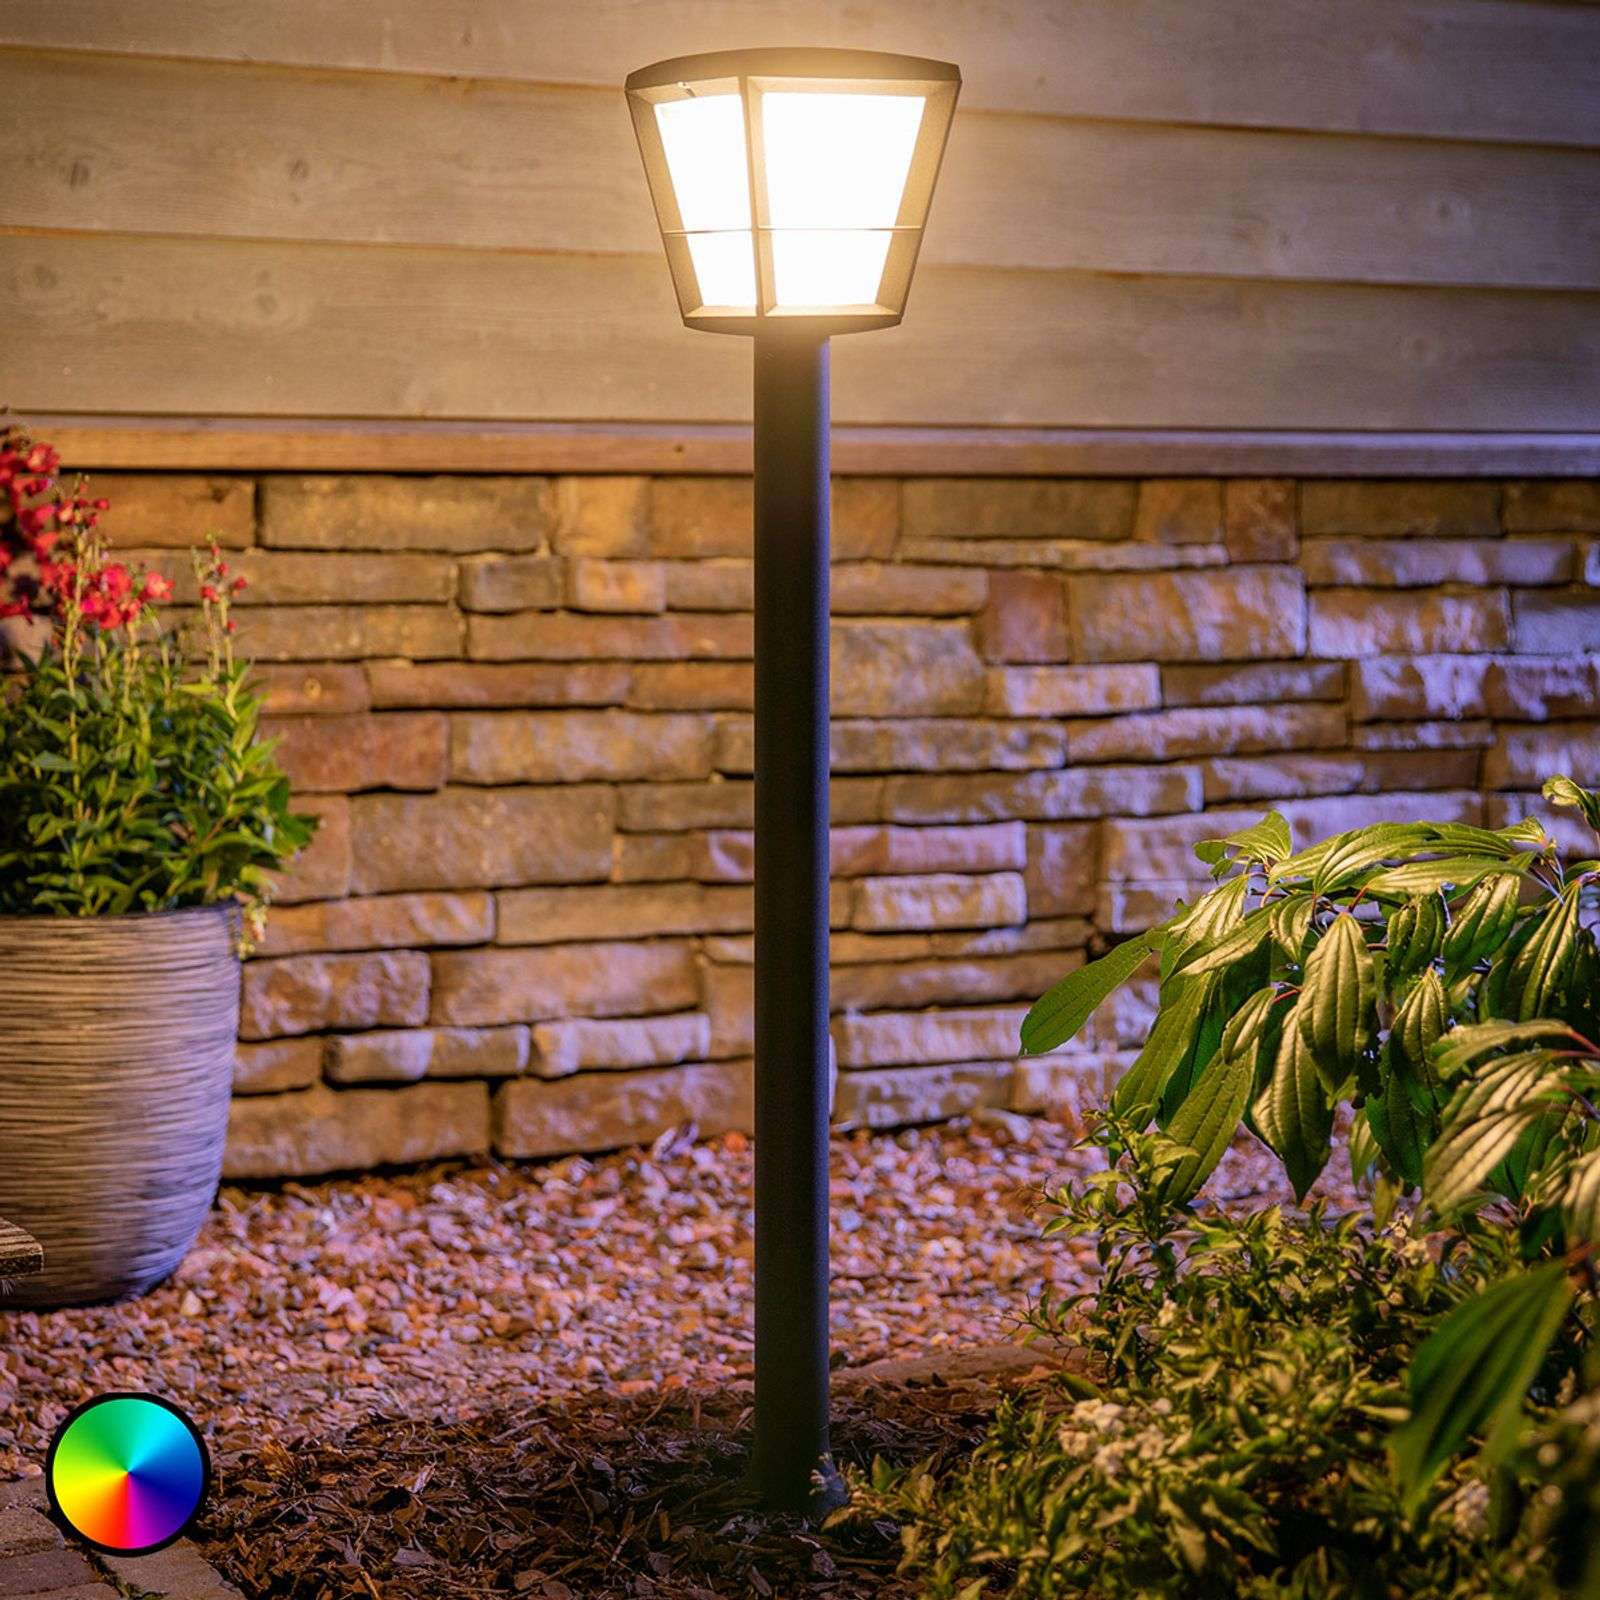 Philips Hue White+Color Econic lampione a LED